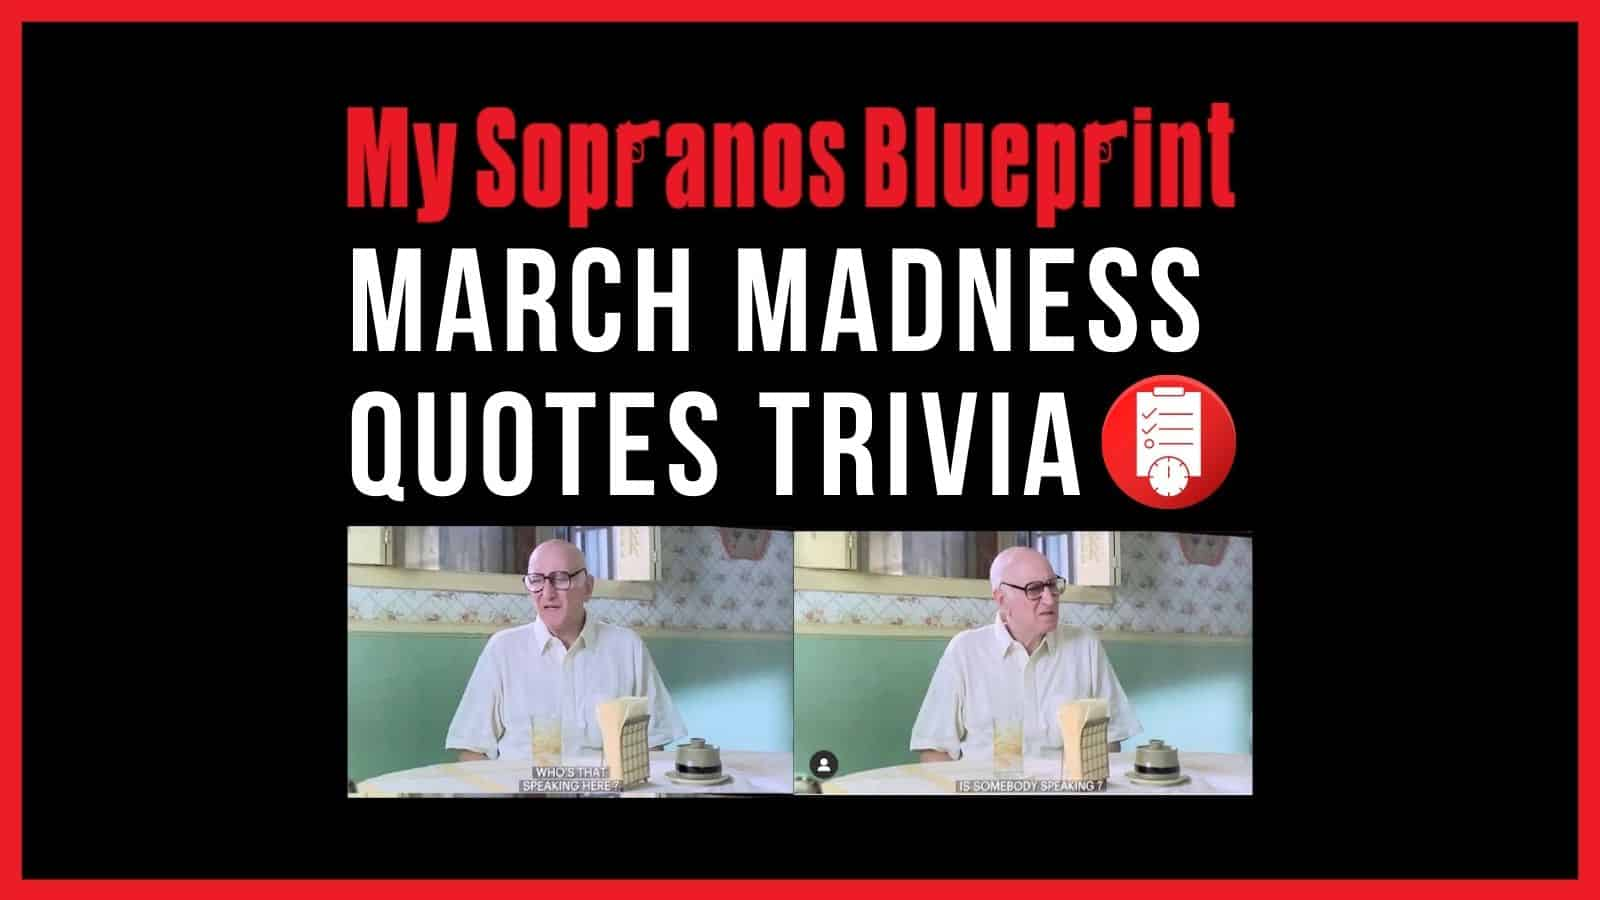 march madness sopranos quotes trivia cover image